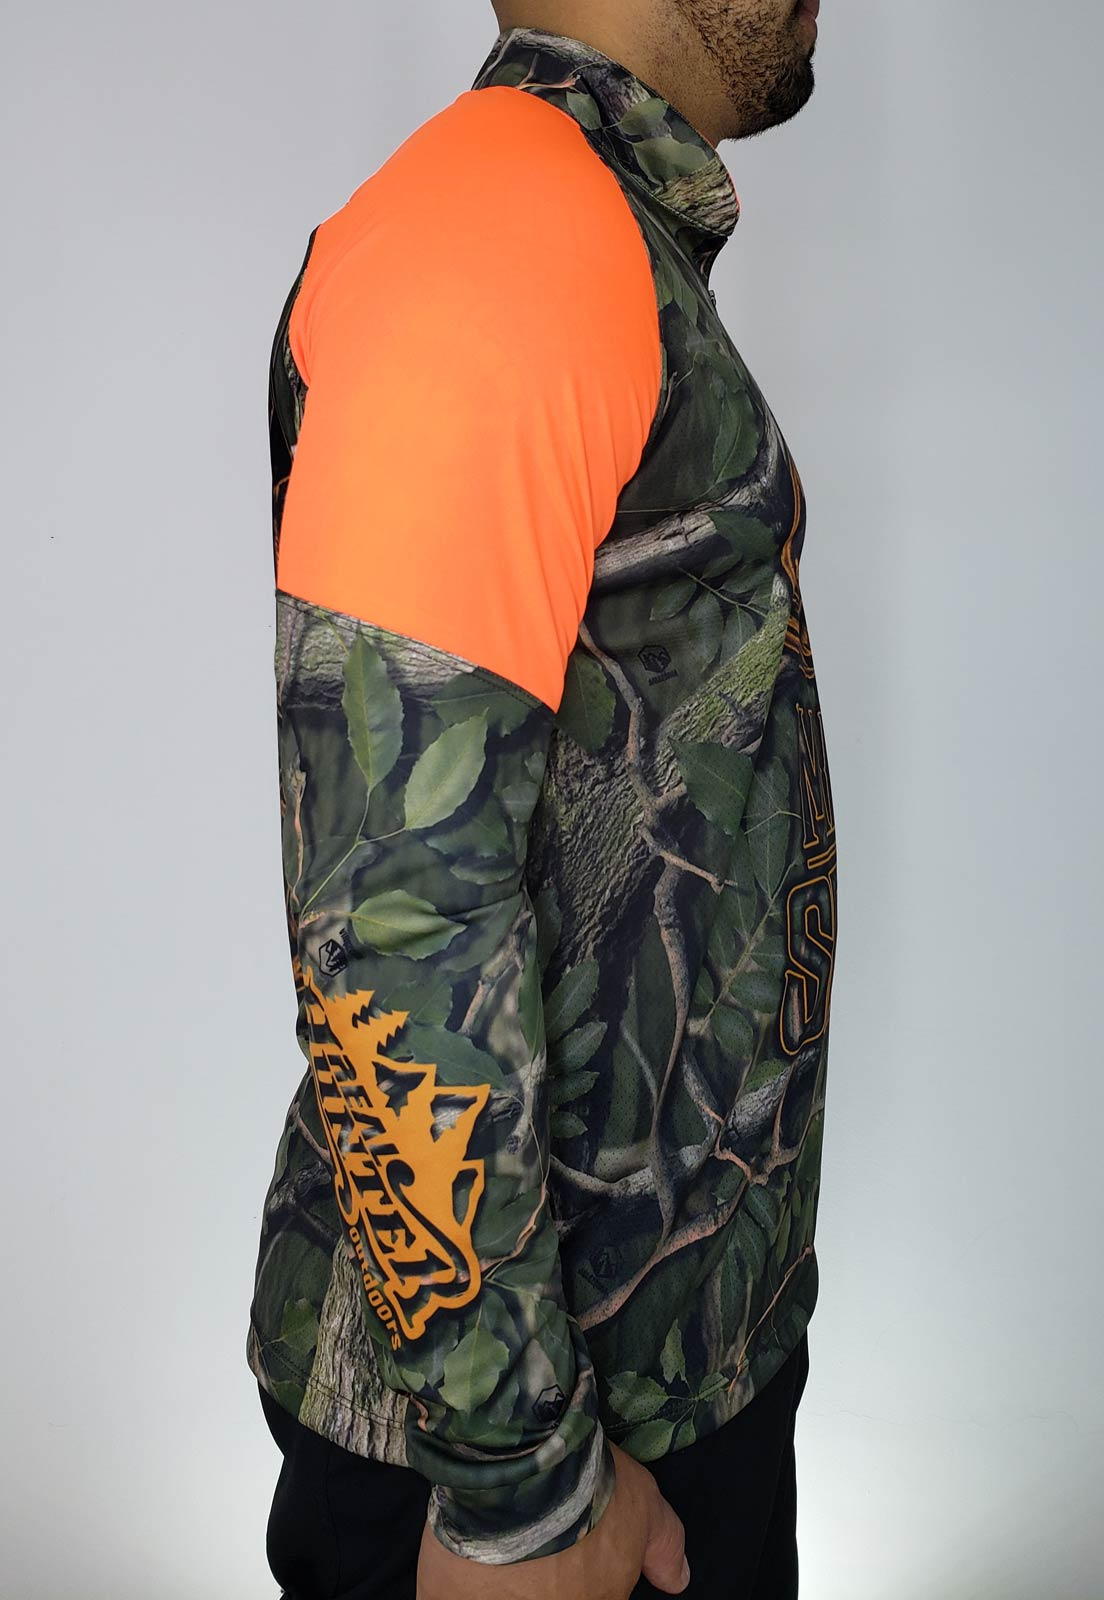 CAMISA DE CAÇA JAVA HUNTER AMAZÔNIA MASCULINA + BANDANA GRÁTIS  - REAL HUNTER OUTDOORS